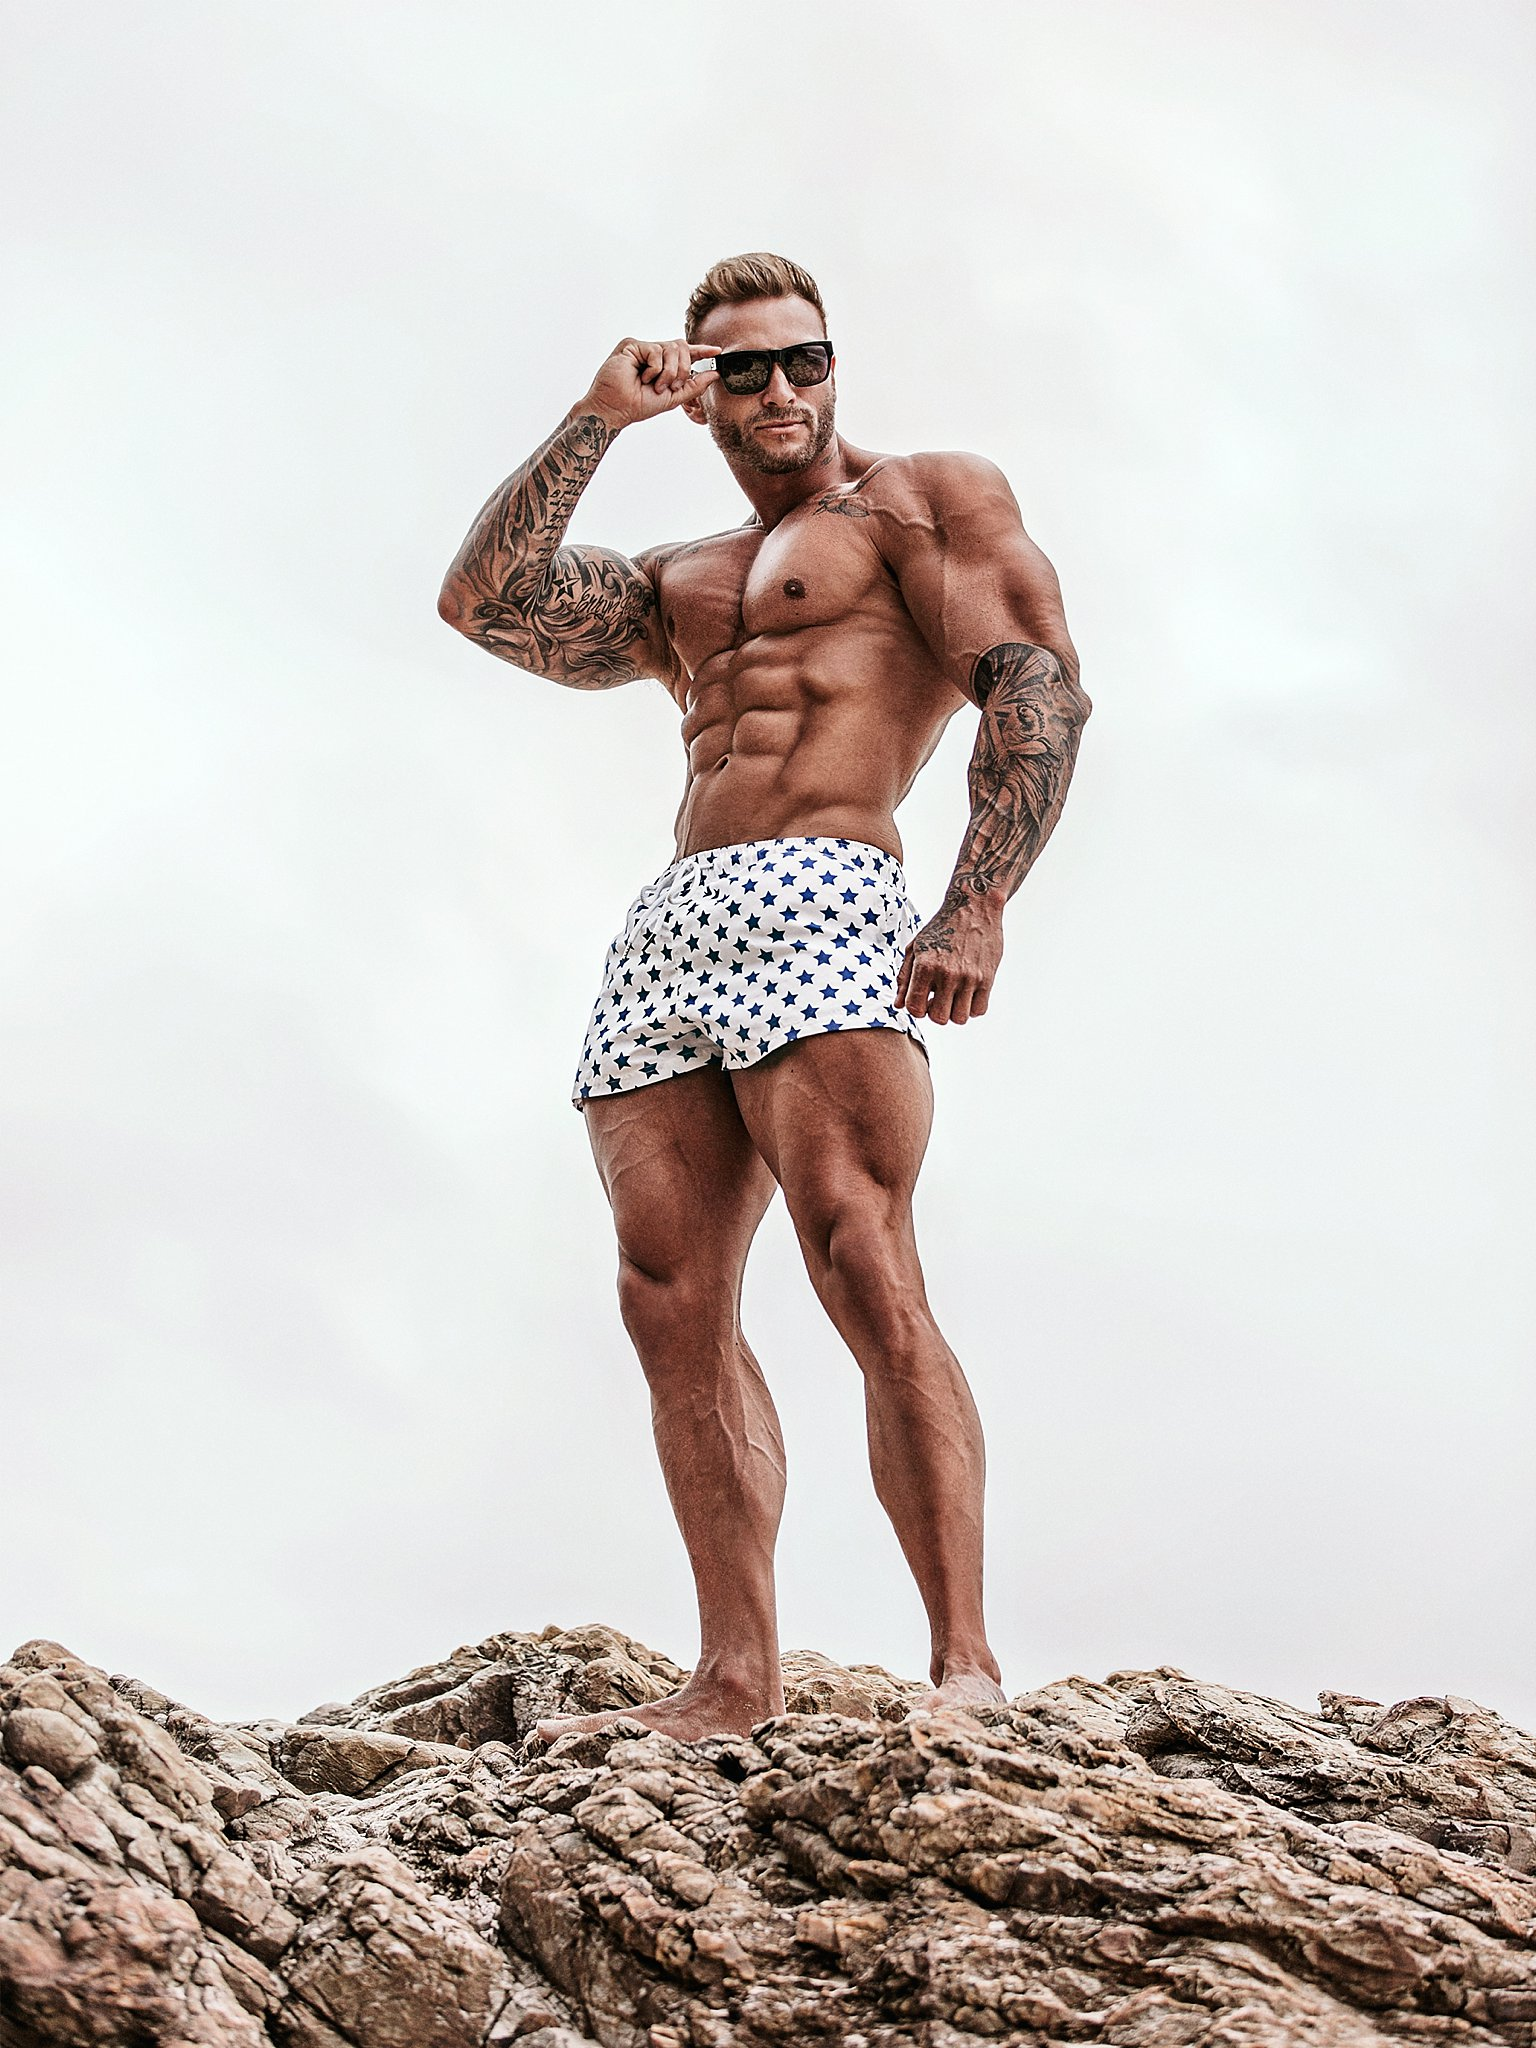 Fitness Photographer Jarrod Carter